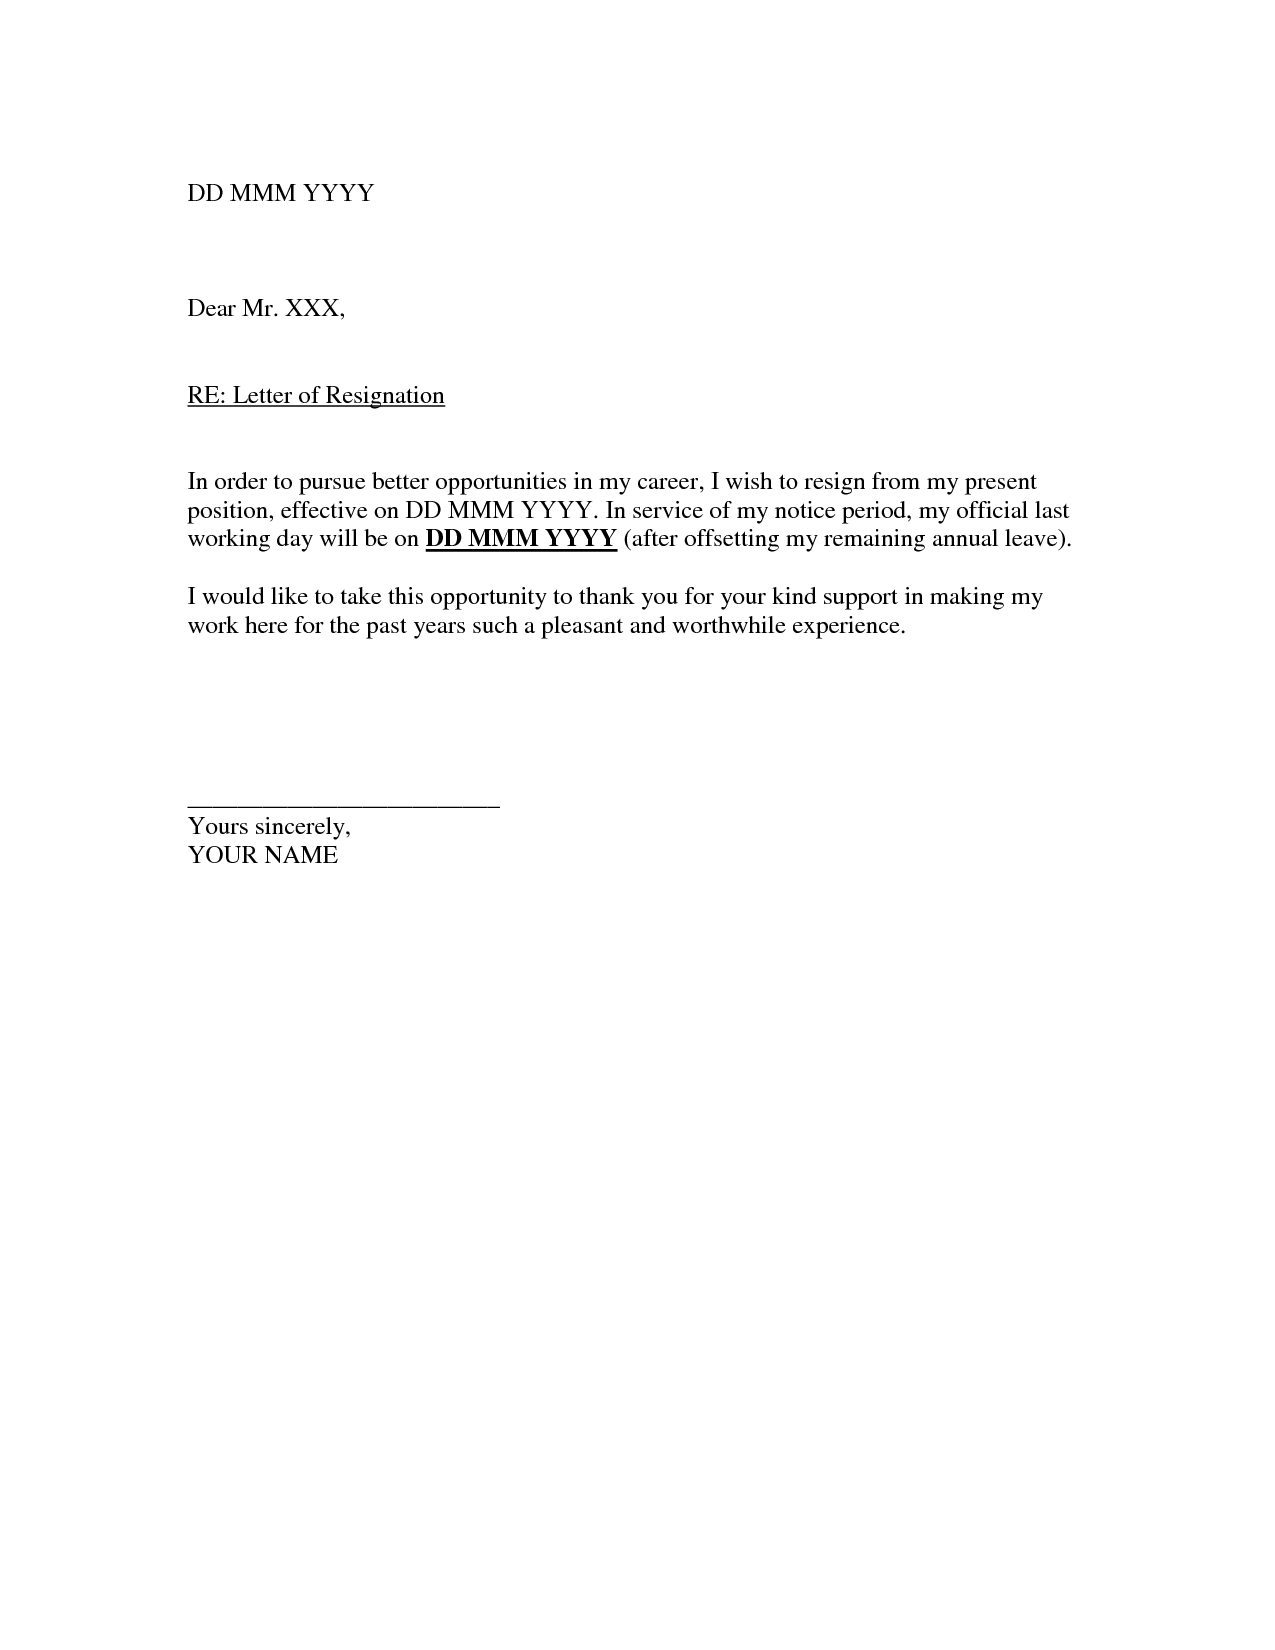 Related To Resignation Letter Template Letters Of Resignation Templates Formal  Resignation Letter Sample Resignation Letter